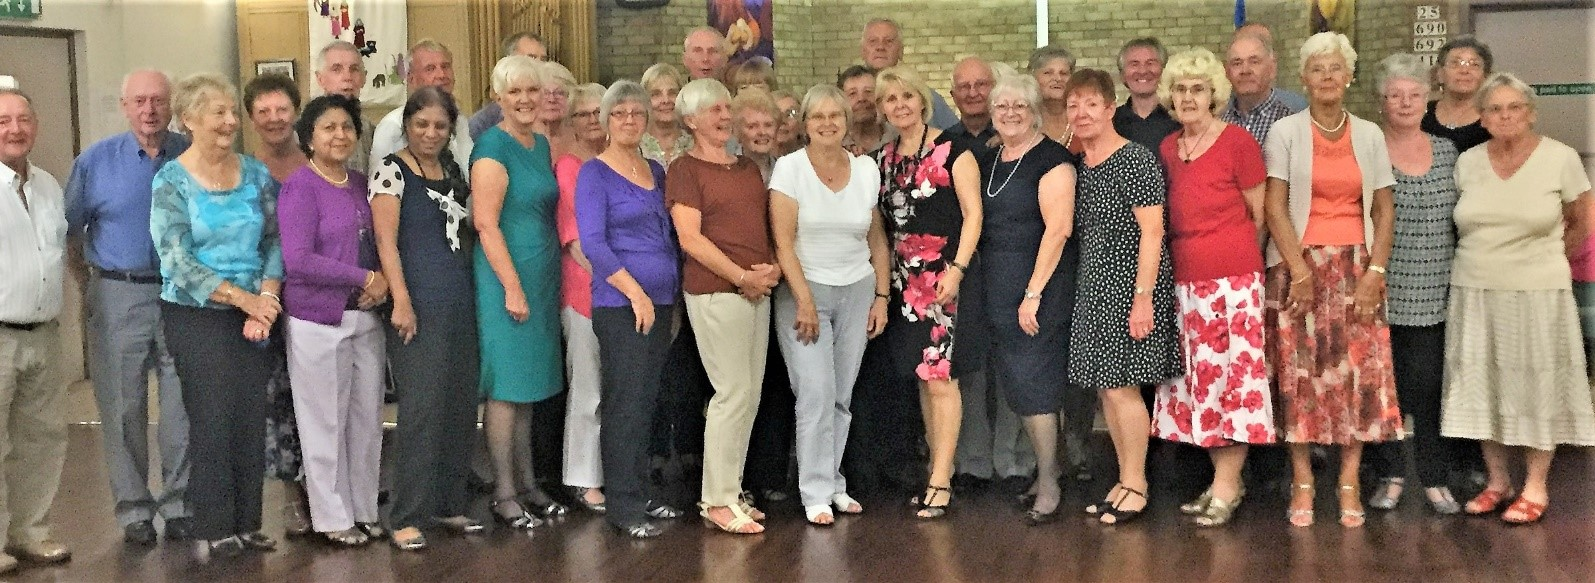 Our sequence dancing group August 2019